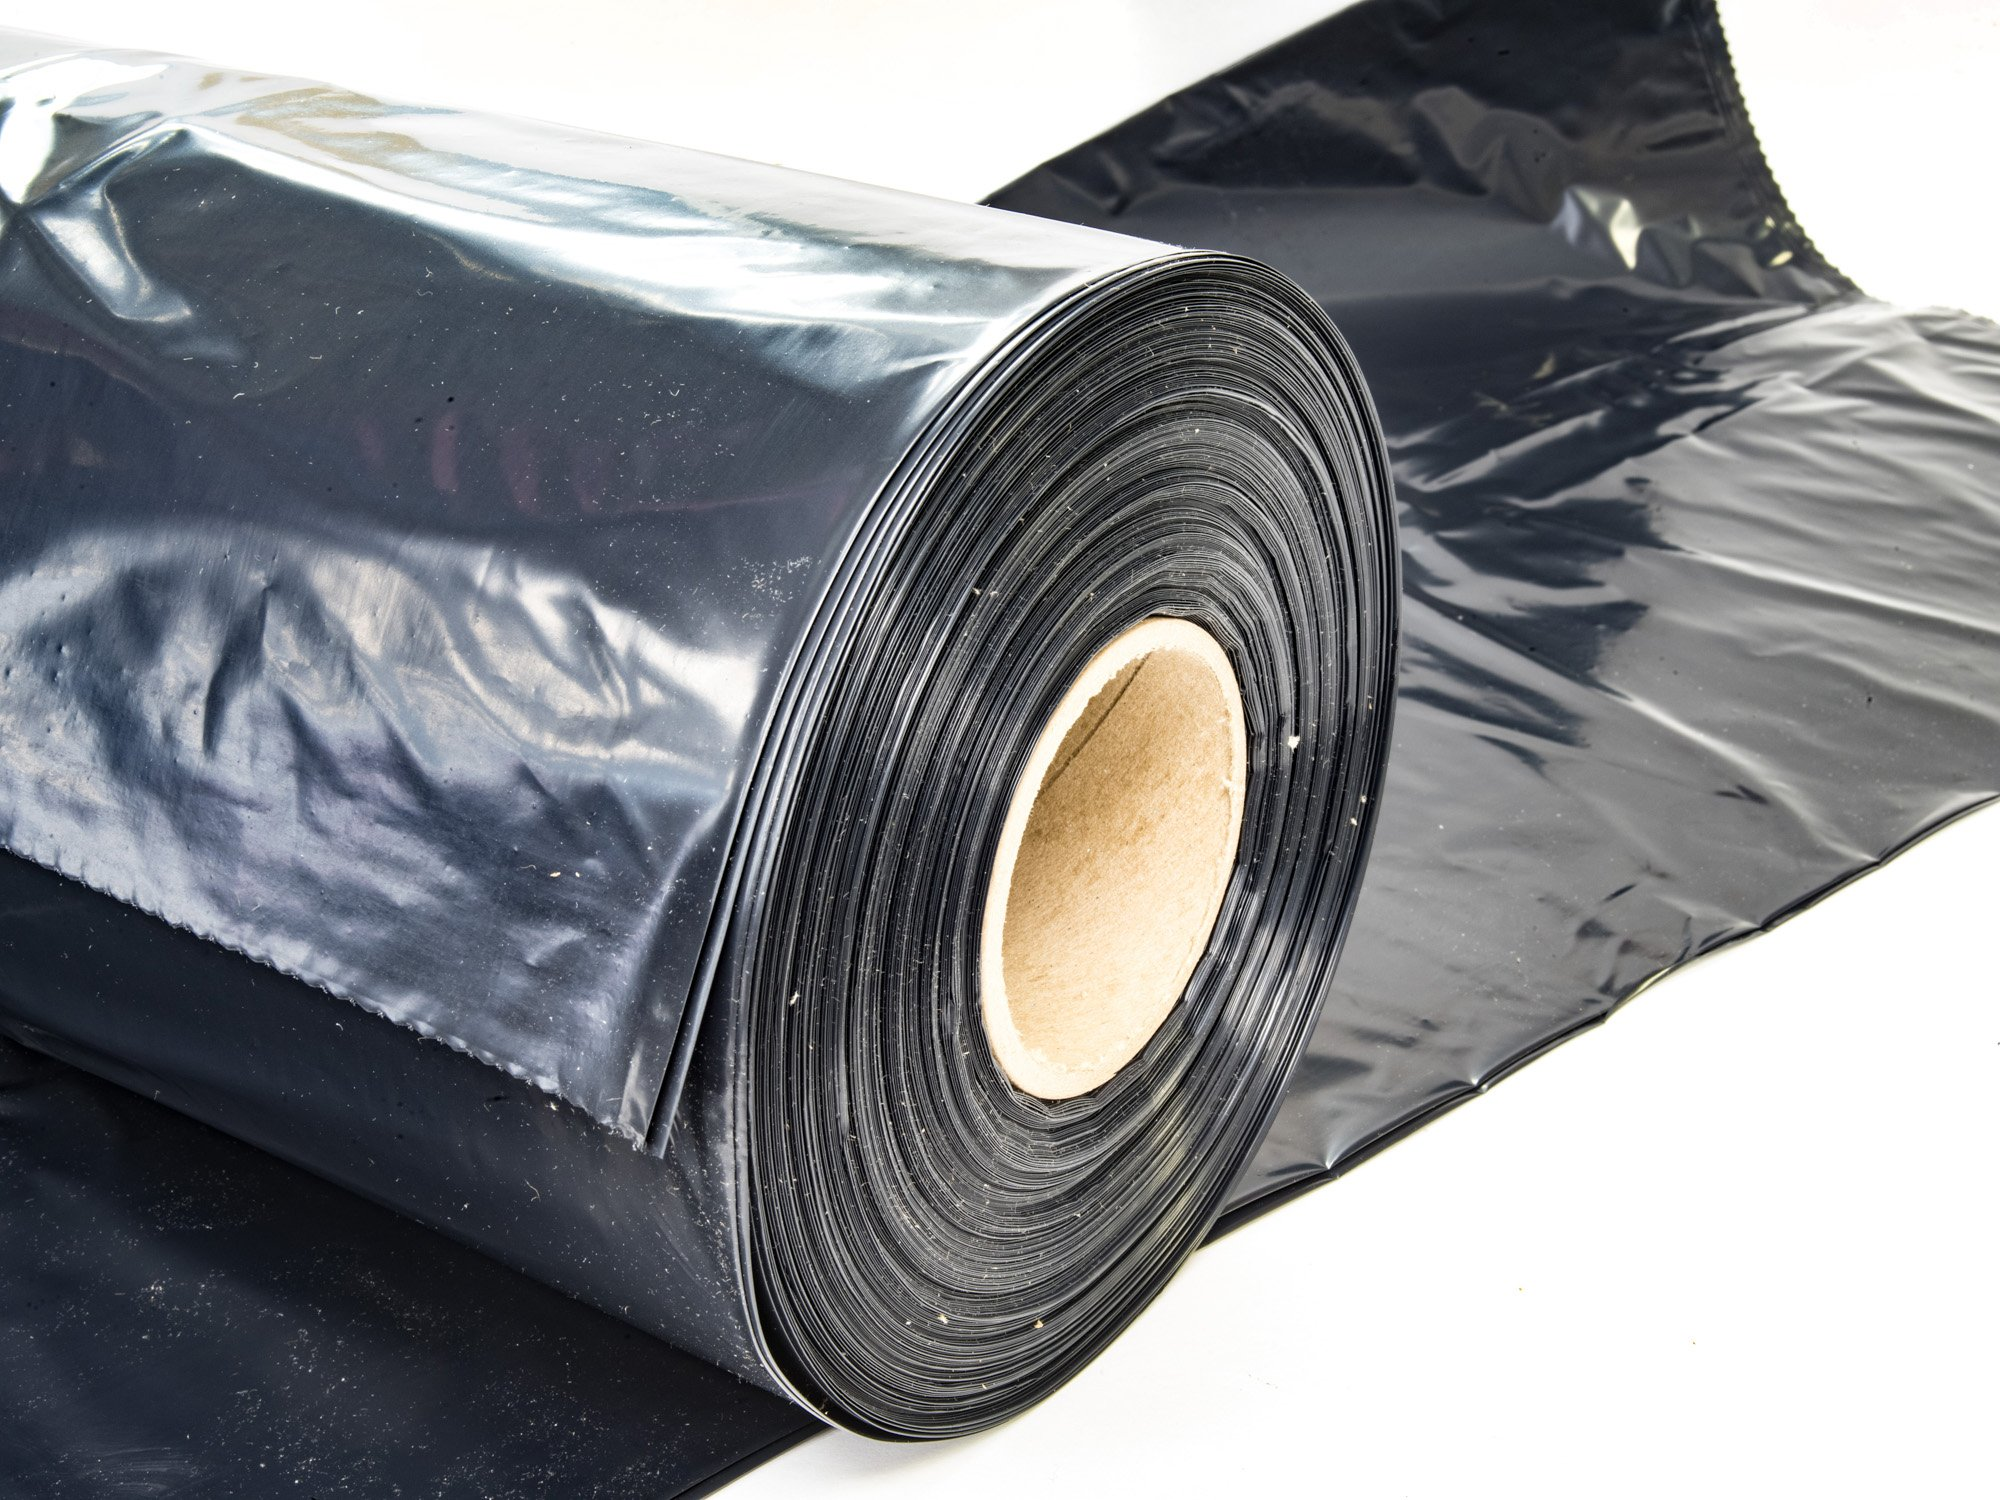 Contractor Bags - 3 Mil Trash Can Liners - 45 Gallon Heavy Duty Black (100 Roll)